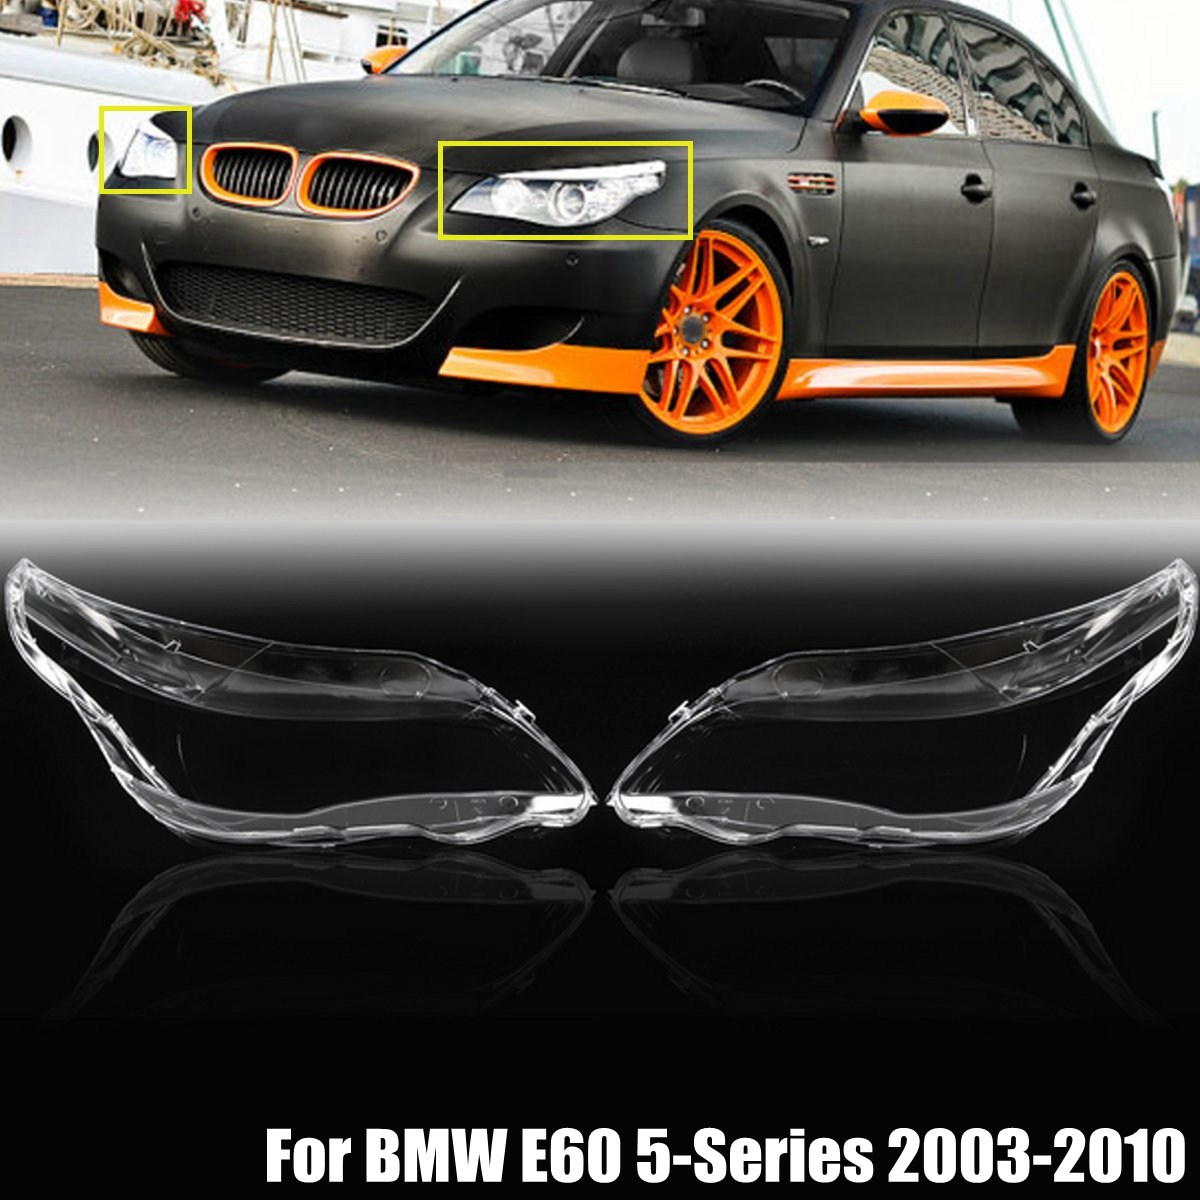 2Pcs Car Headlight Cover Headlamp Lens Covers For BMW 5-Series M5 E60 E61 525i 530i 545i 550i 2003 2004 2005 2006-2010 for bmw 5 series e60 e61 lci 525i 528i 530i 545i 550i m5 2007 2010 xenon headlight dtm style ultra bright led angel eyes kit page 9